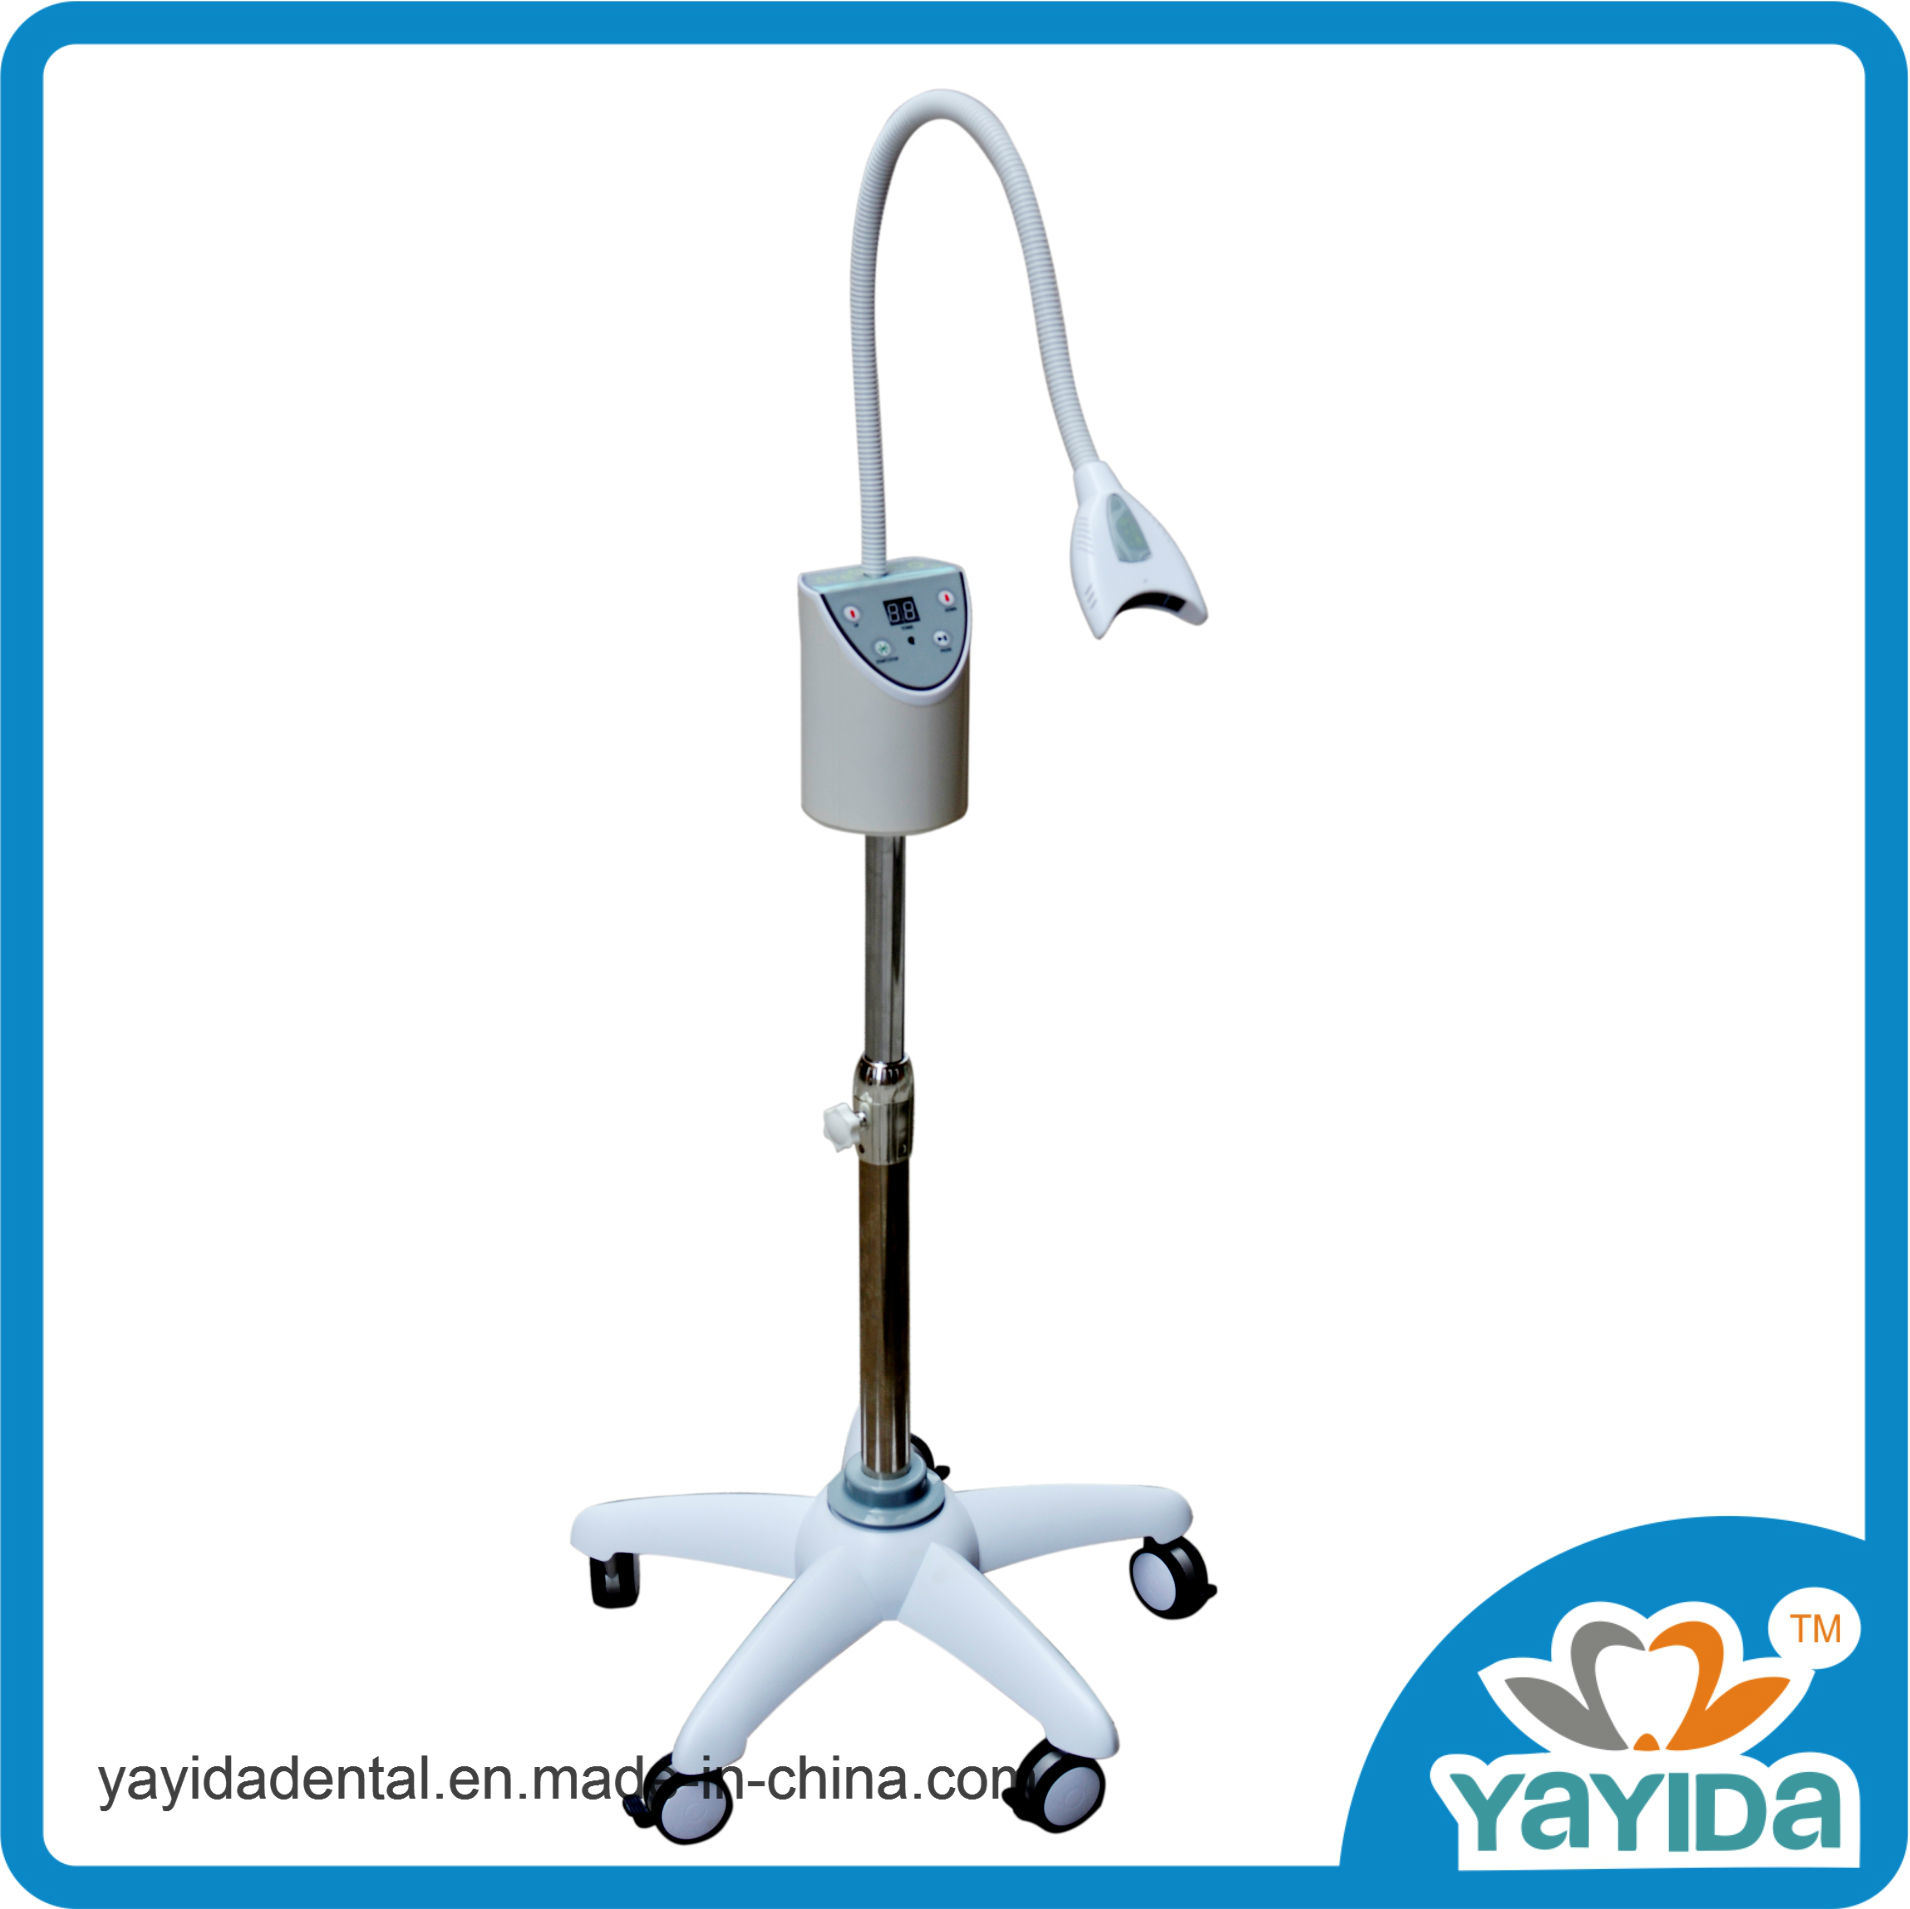 Dental Teeth Whiening Unit with Four High Power Blue LED Lamps